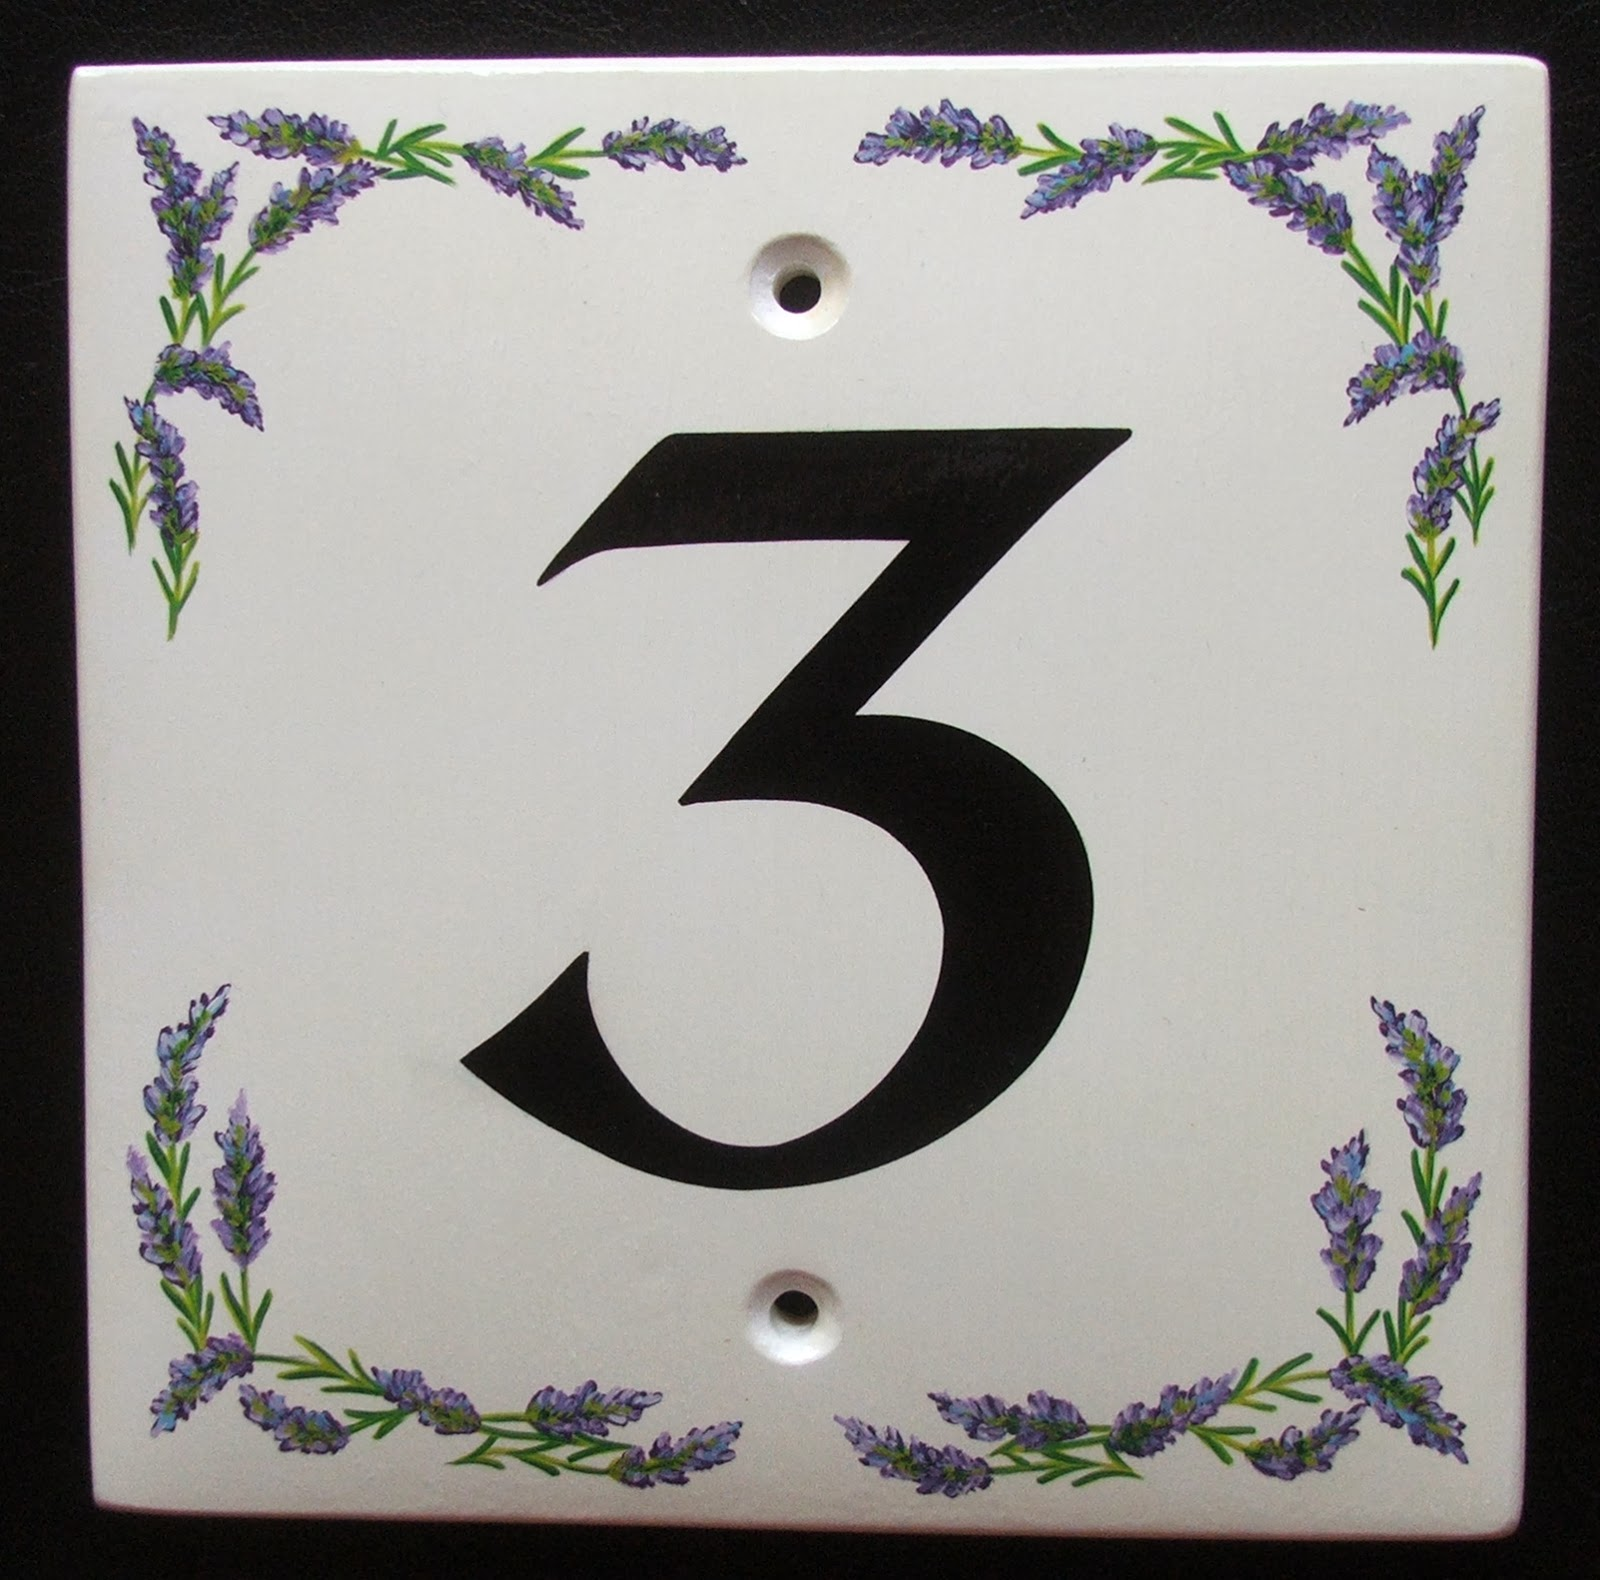 Hand painted house signs by ceramic art october 2013 house number sign with lavender borderr see more of our hand painted signs at handpaintedhousesignsuk email us at saleshandpaintedhousesigns dailygadgetfo Gallery